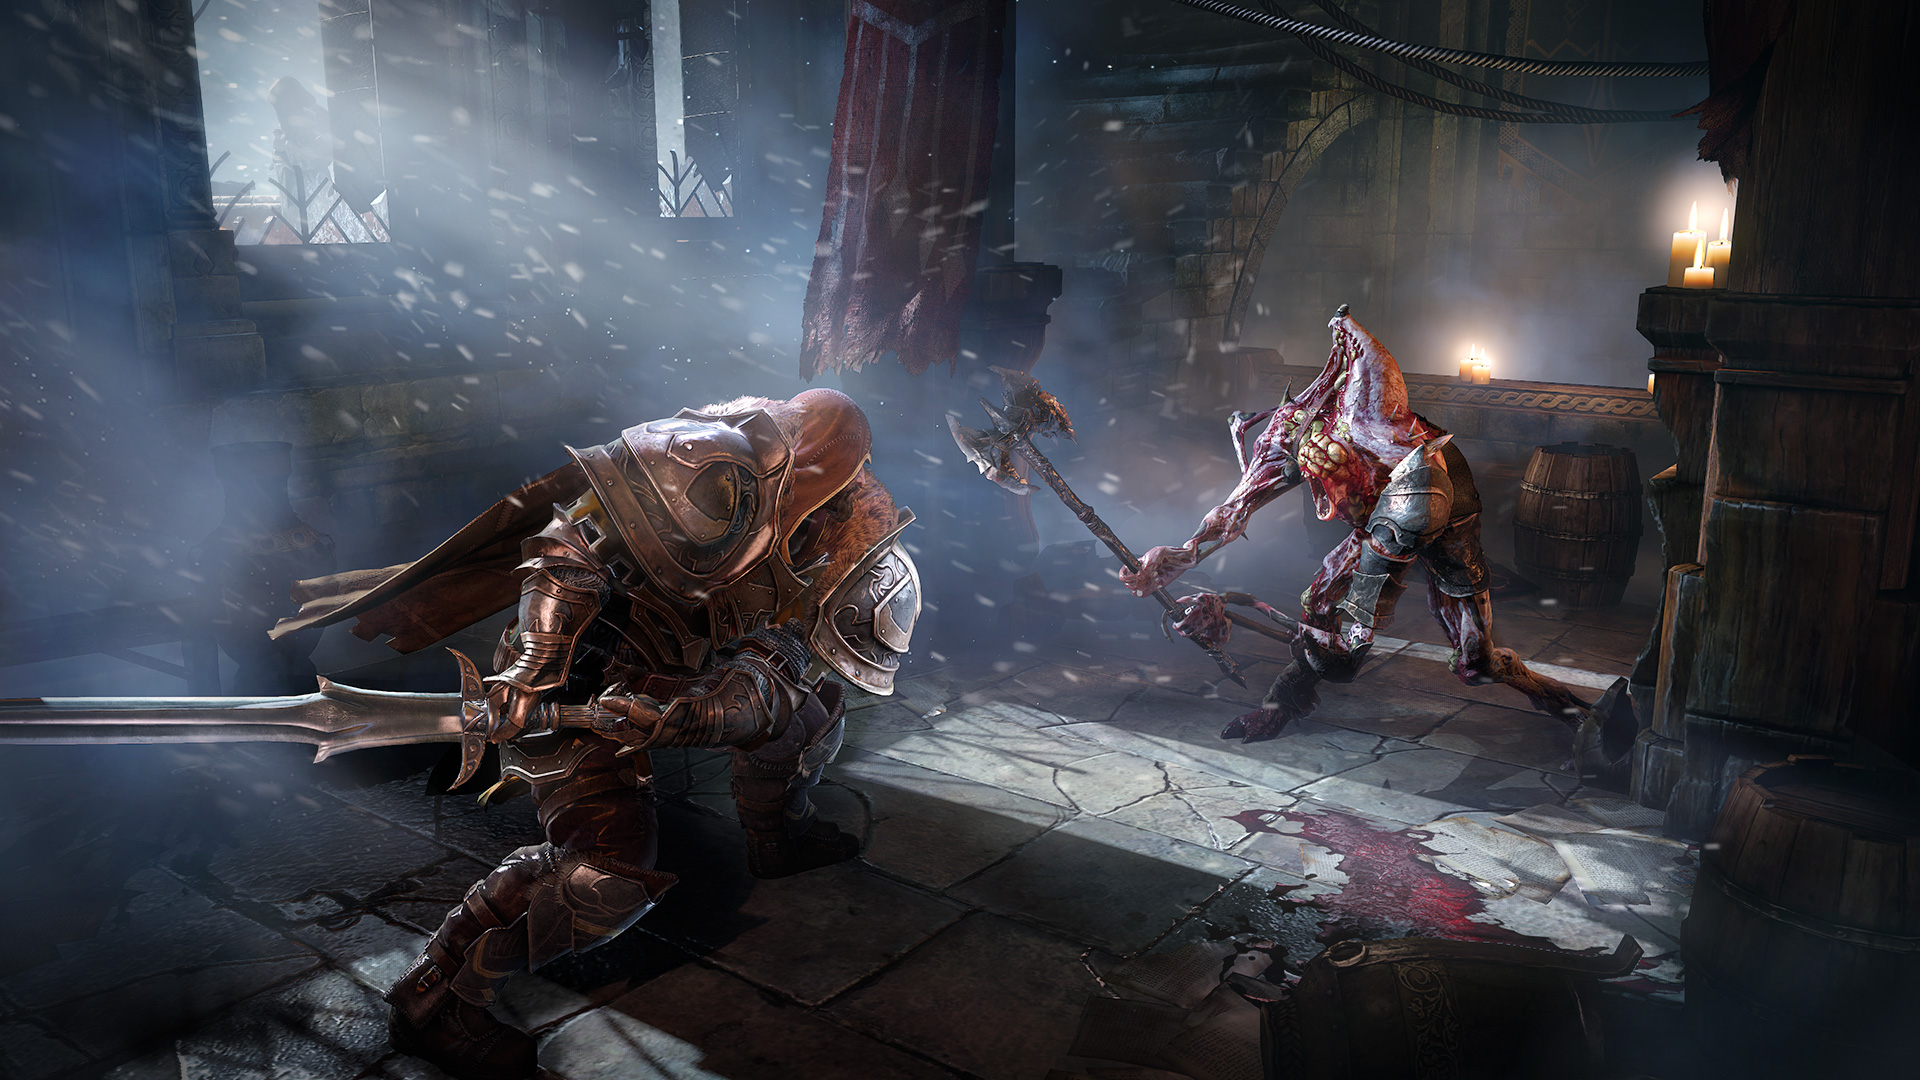 October's action-RPG Lords of the Fallen will run in 1080p on PlayStation 4 and 900p on Xbox One, creative director Tomasz Gop confirmed in an interview ...